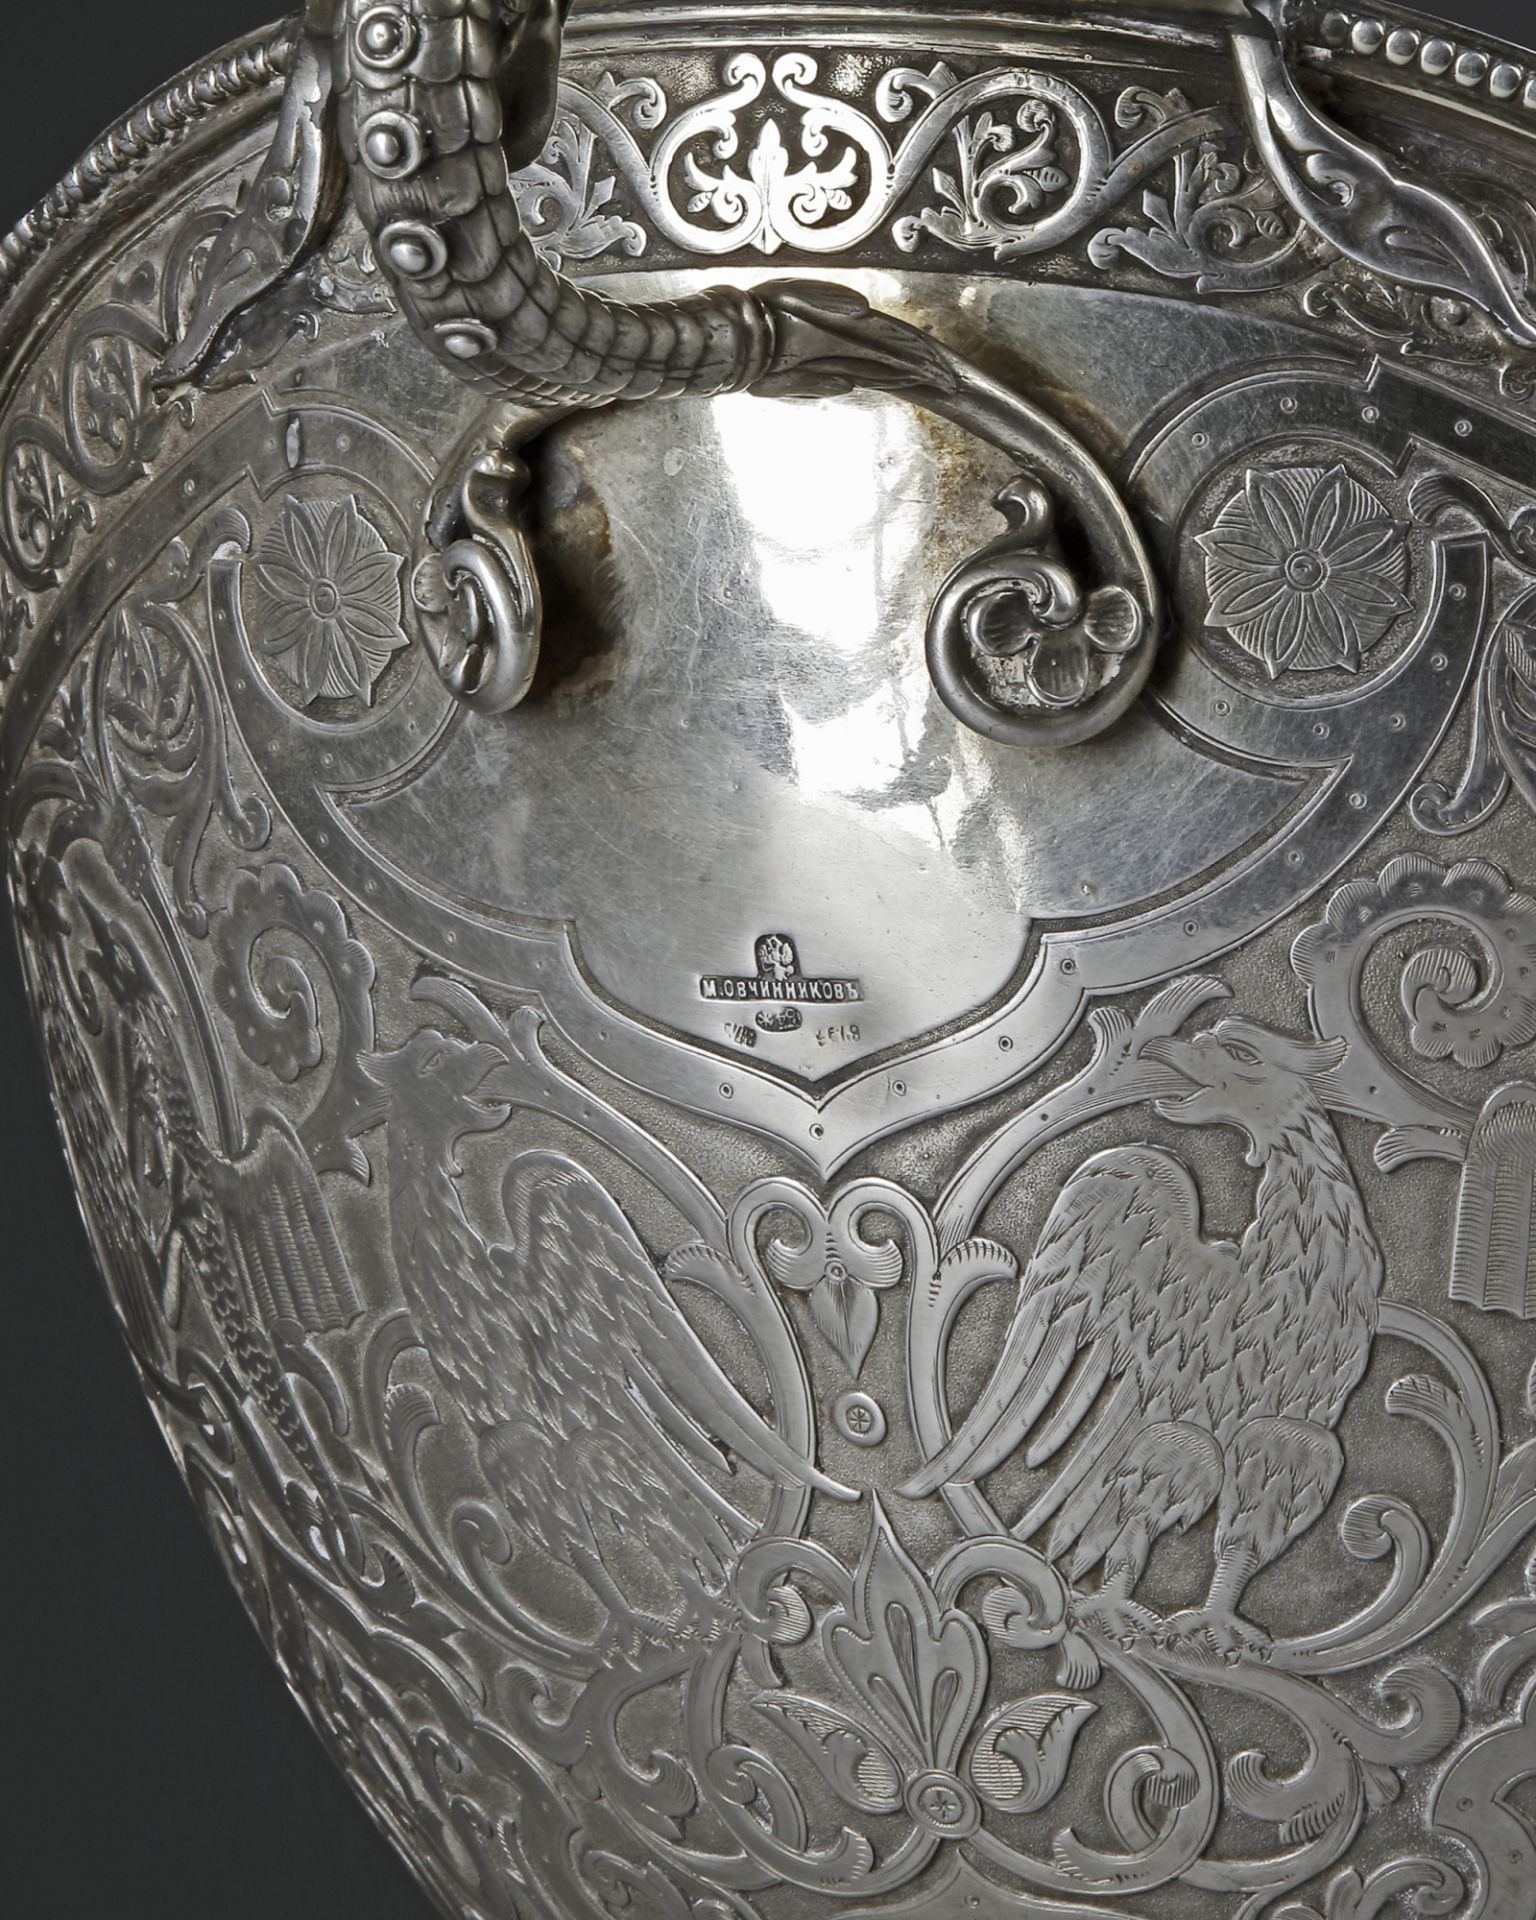 A LARGE RUSSIAN IMPERIAL SILVER KOVSCH BOWL, LATE 19TH CENTURY - Image 8 of 8